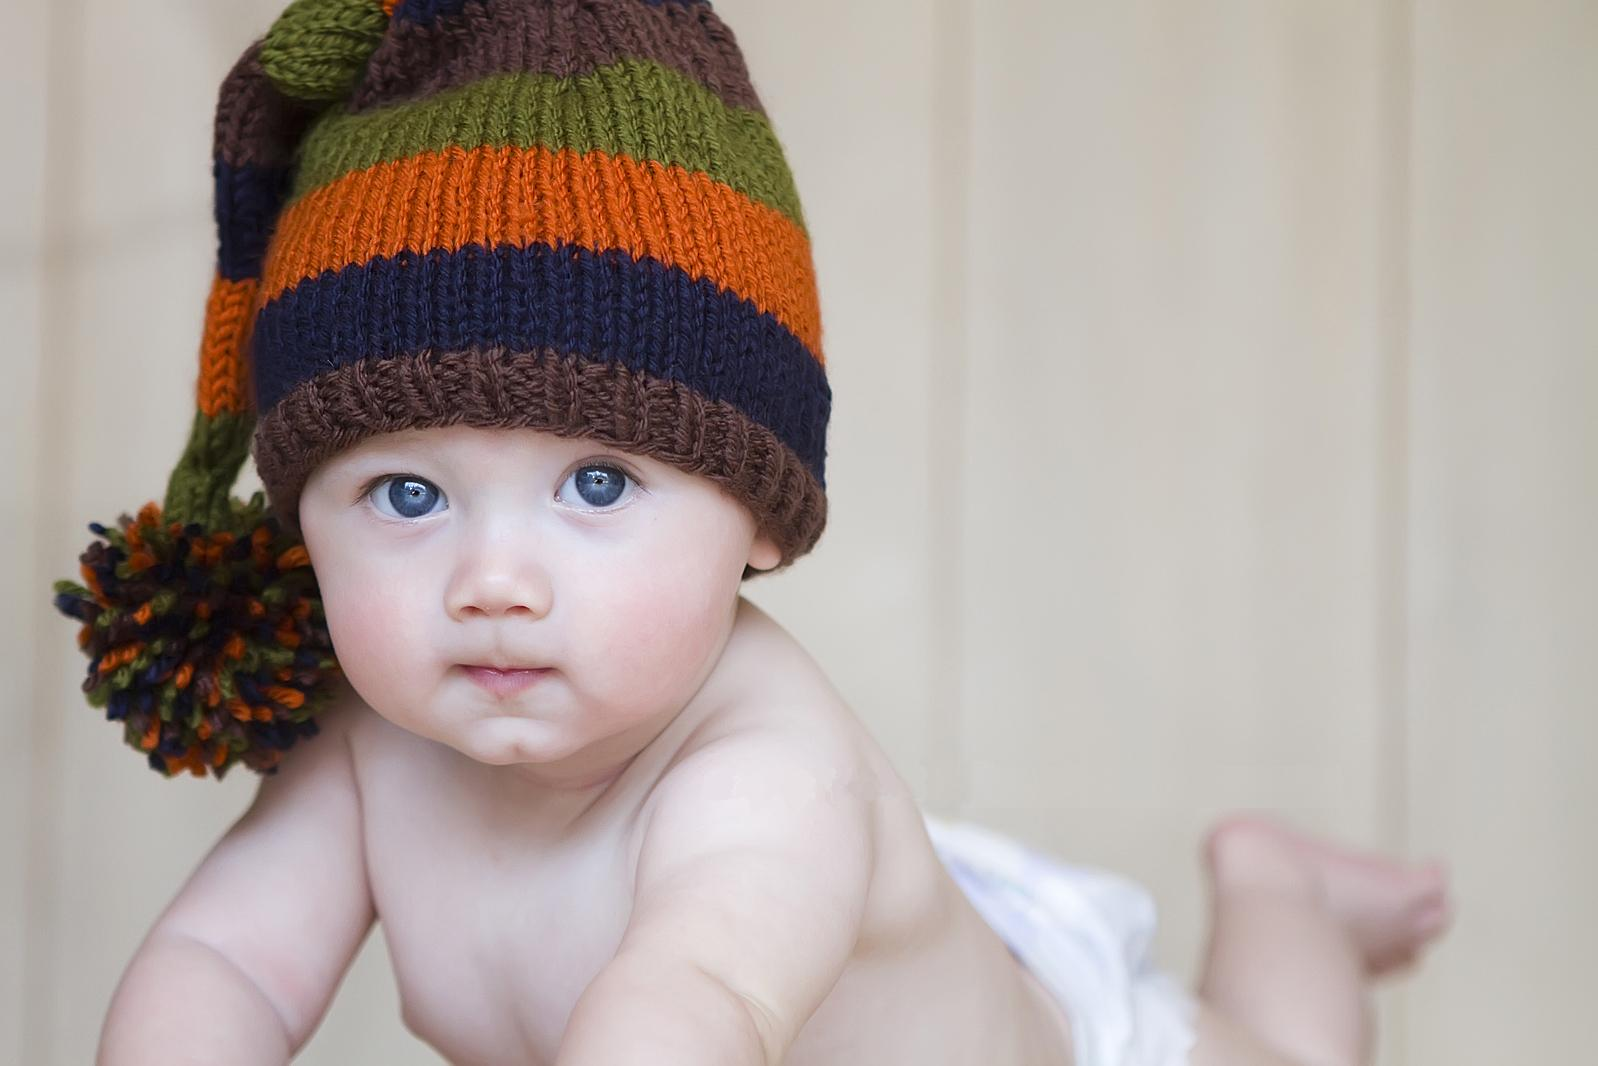 Cute Baby With Hat Wallpapers: Cute Baby Crochet Hat Wallpapers